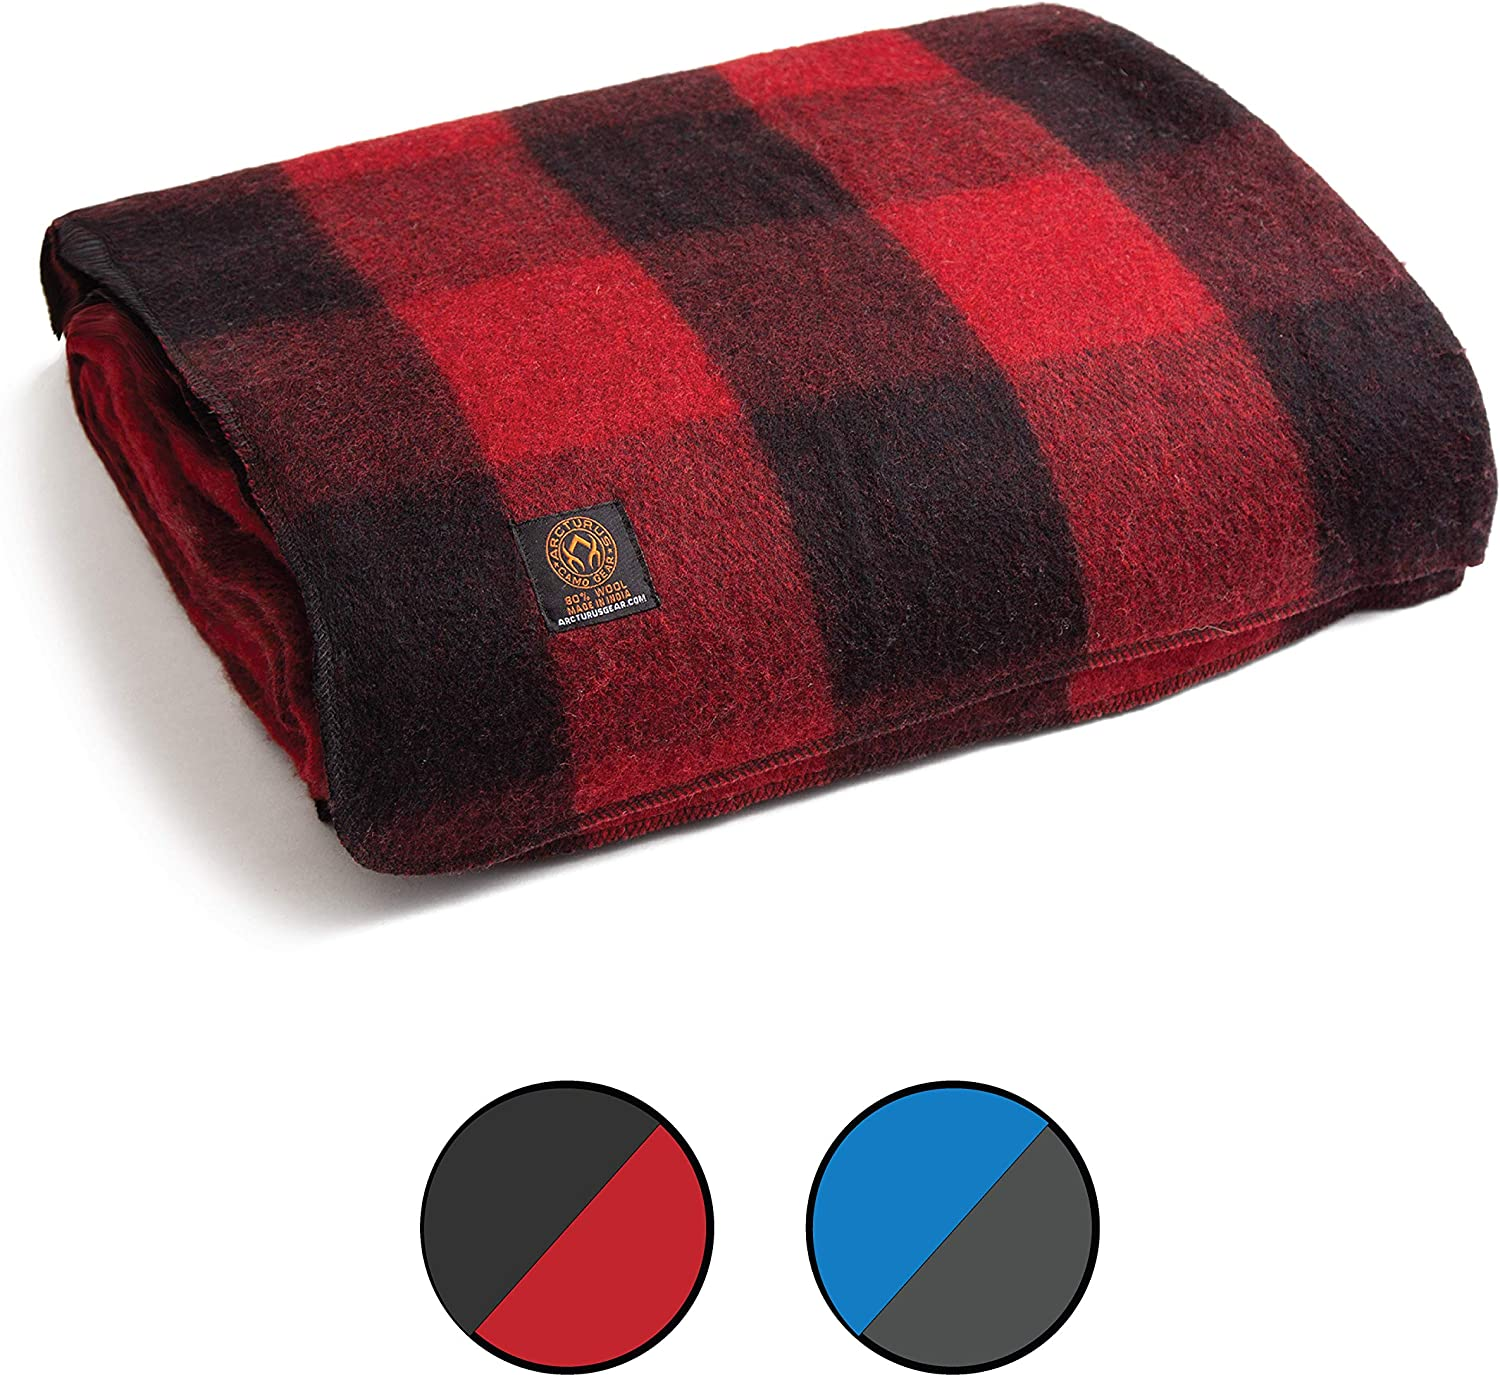 Washable Sporting Events Outdoors or Survival /& Emergency Kits Great for Camping Arcturus Patterned Wool Blankets Large Heavy 4+ Pounds Warm